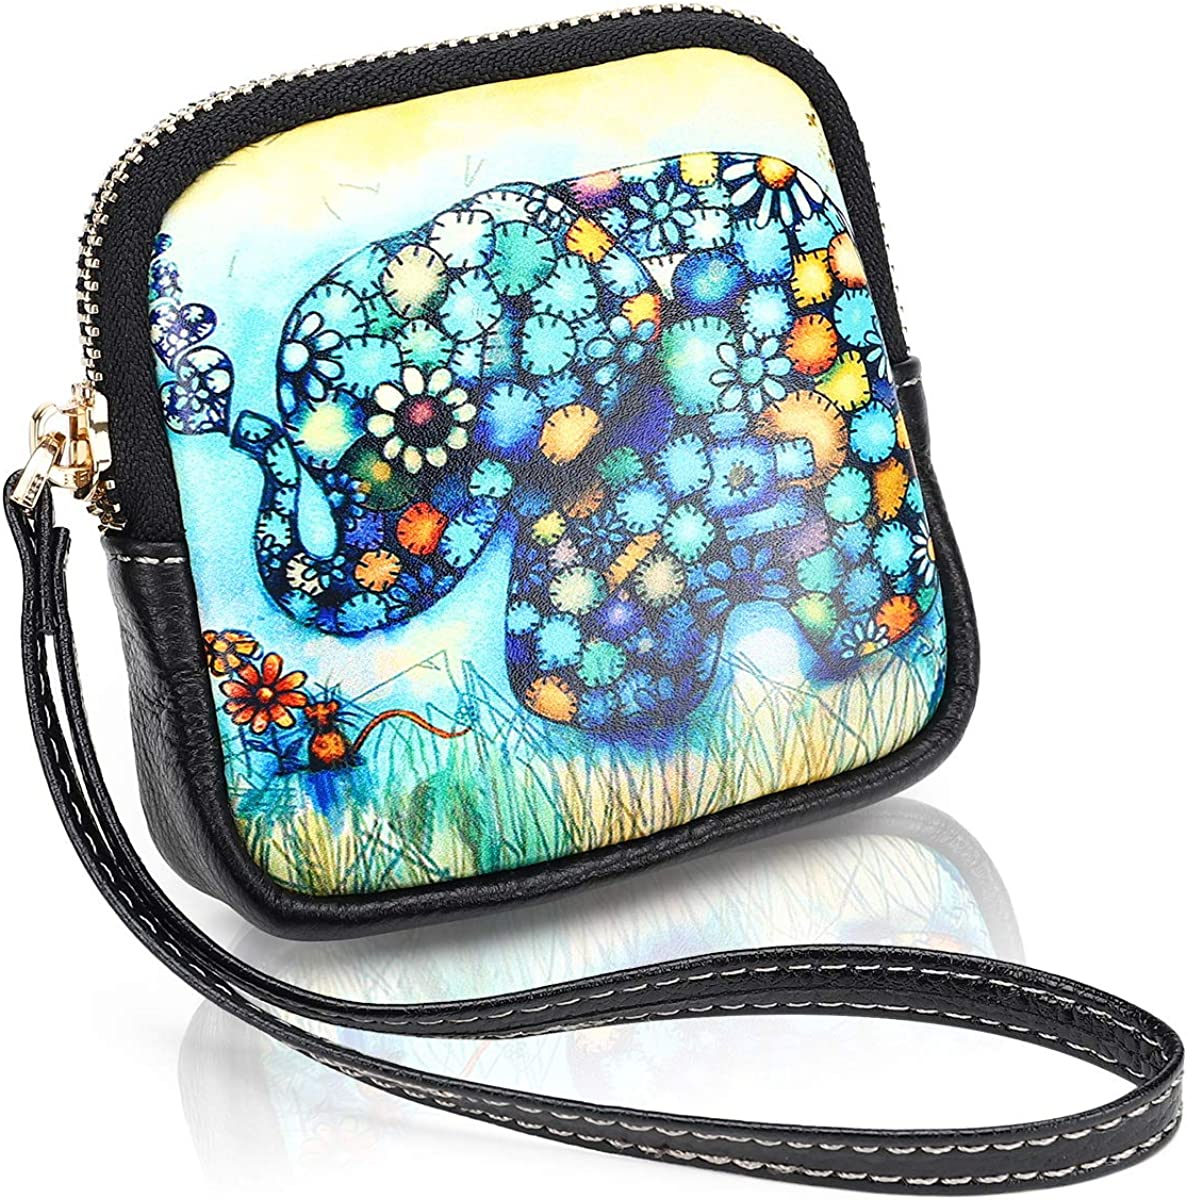 APHISON Coin purse for Women microfiber leather change wallet Portable Cartoon and print styles wrist strap pouch